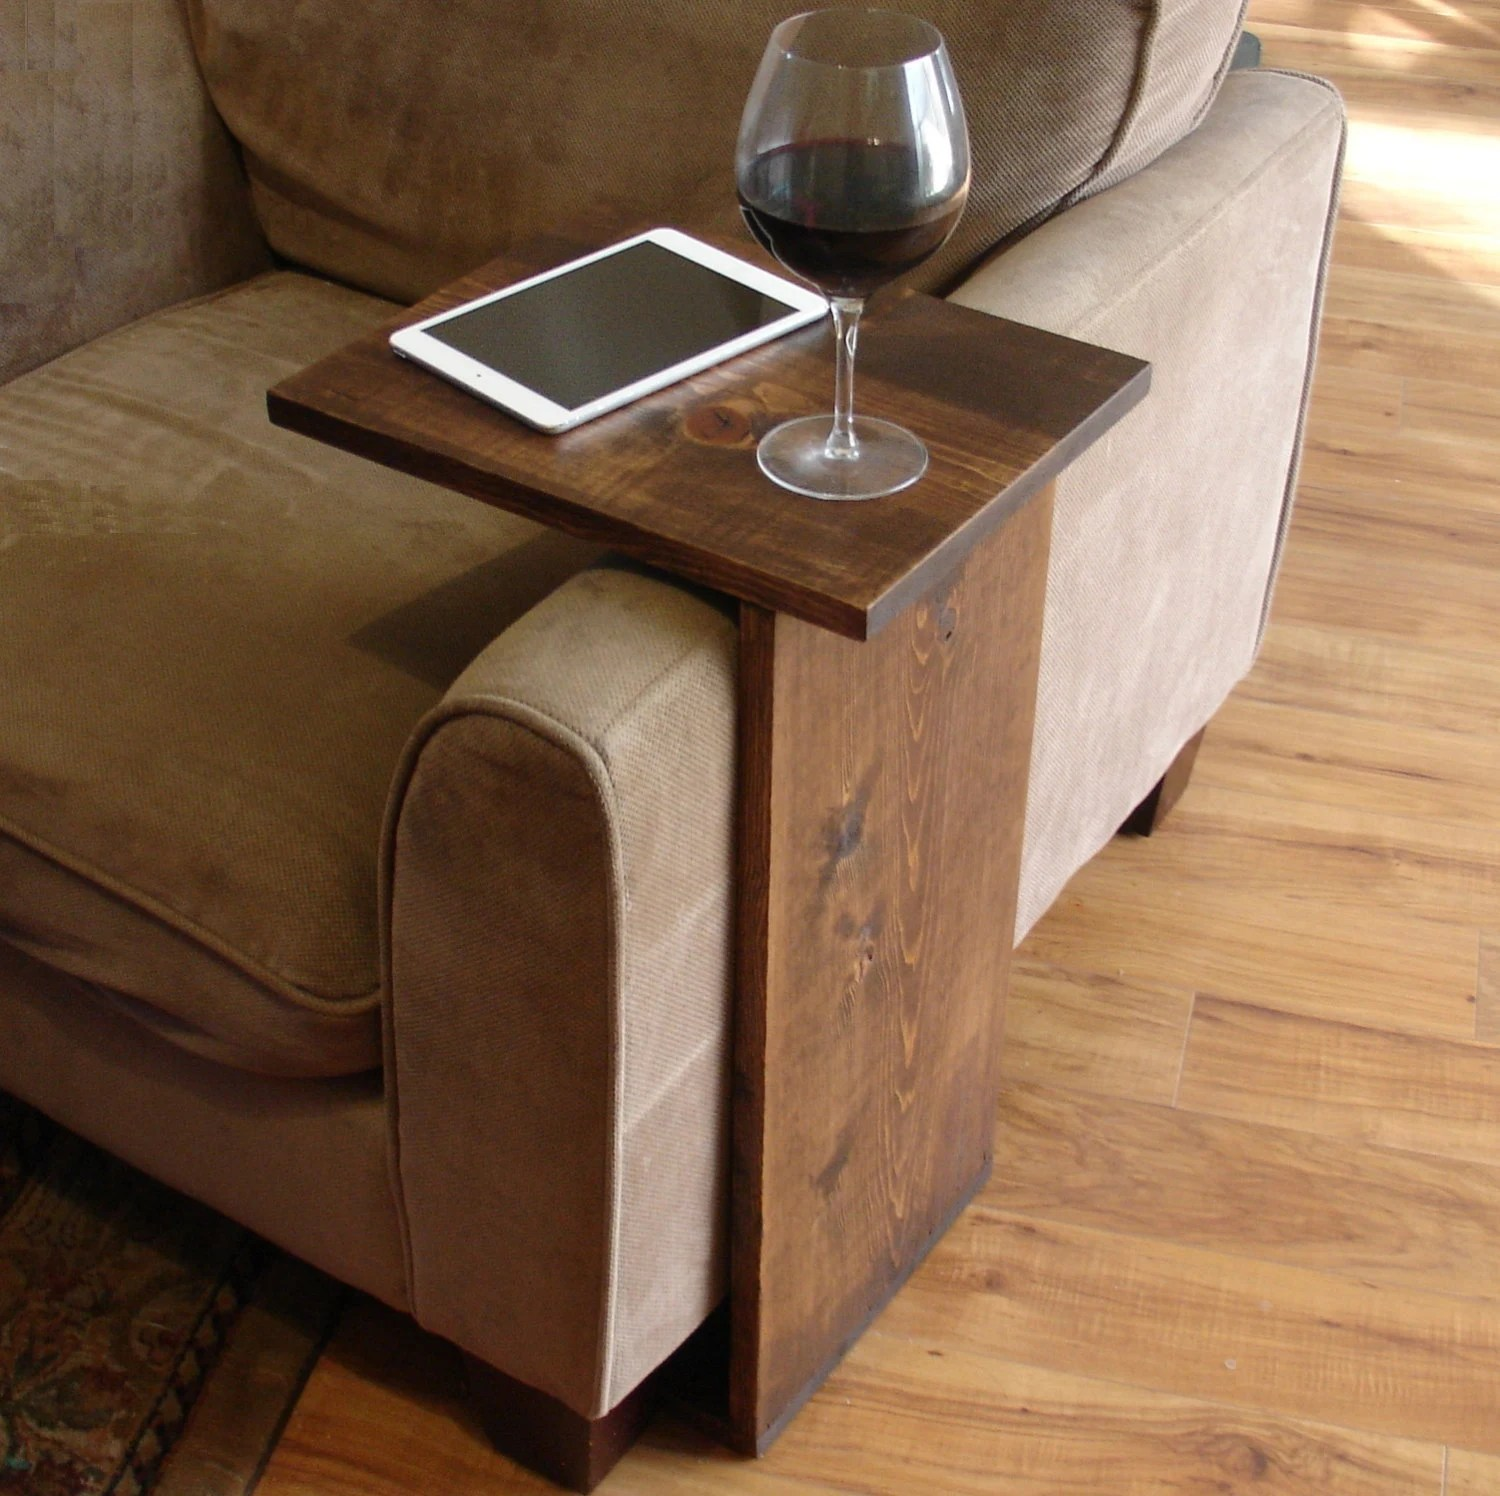 sofa arm tray wood painted kcmo chair rest table stand